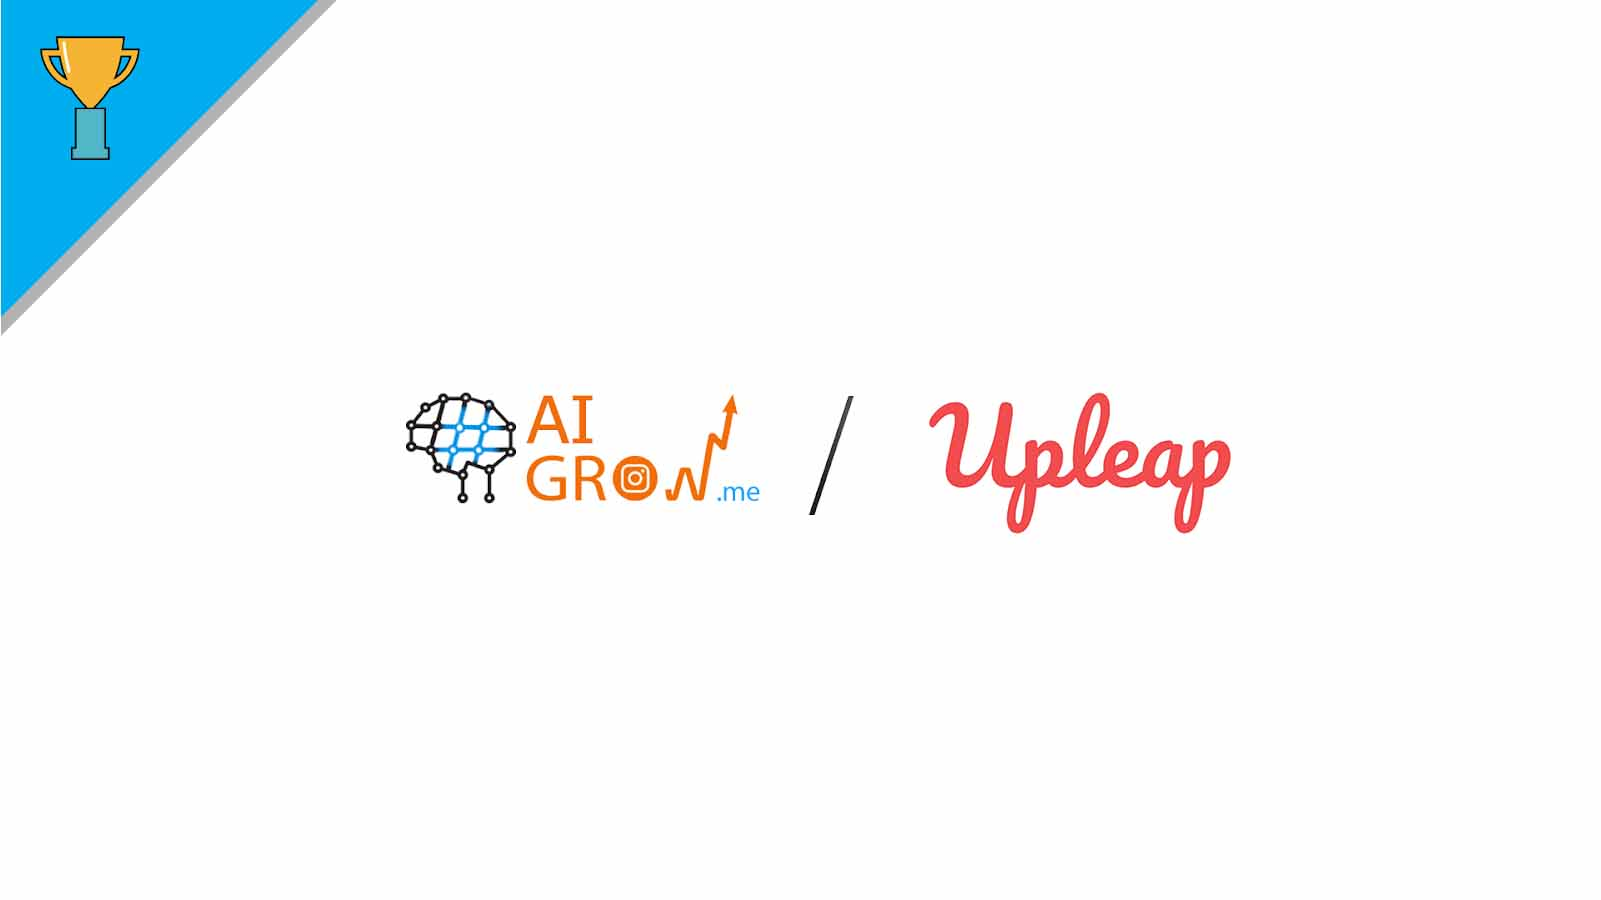 Upleap vs. AiGrow – What's Better for Getting Instagram Followers?